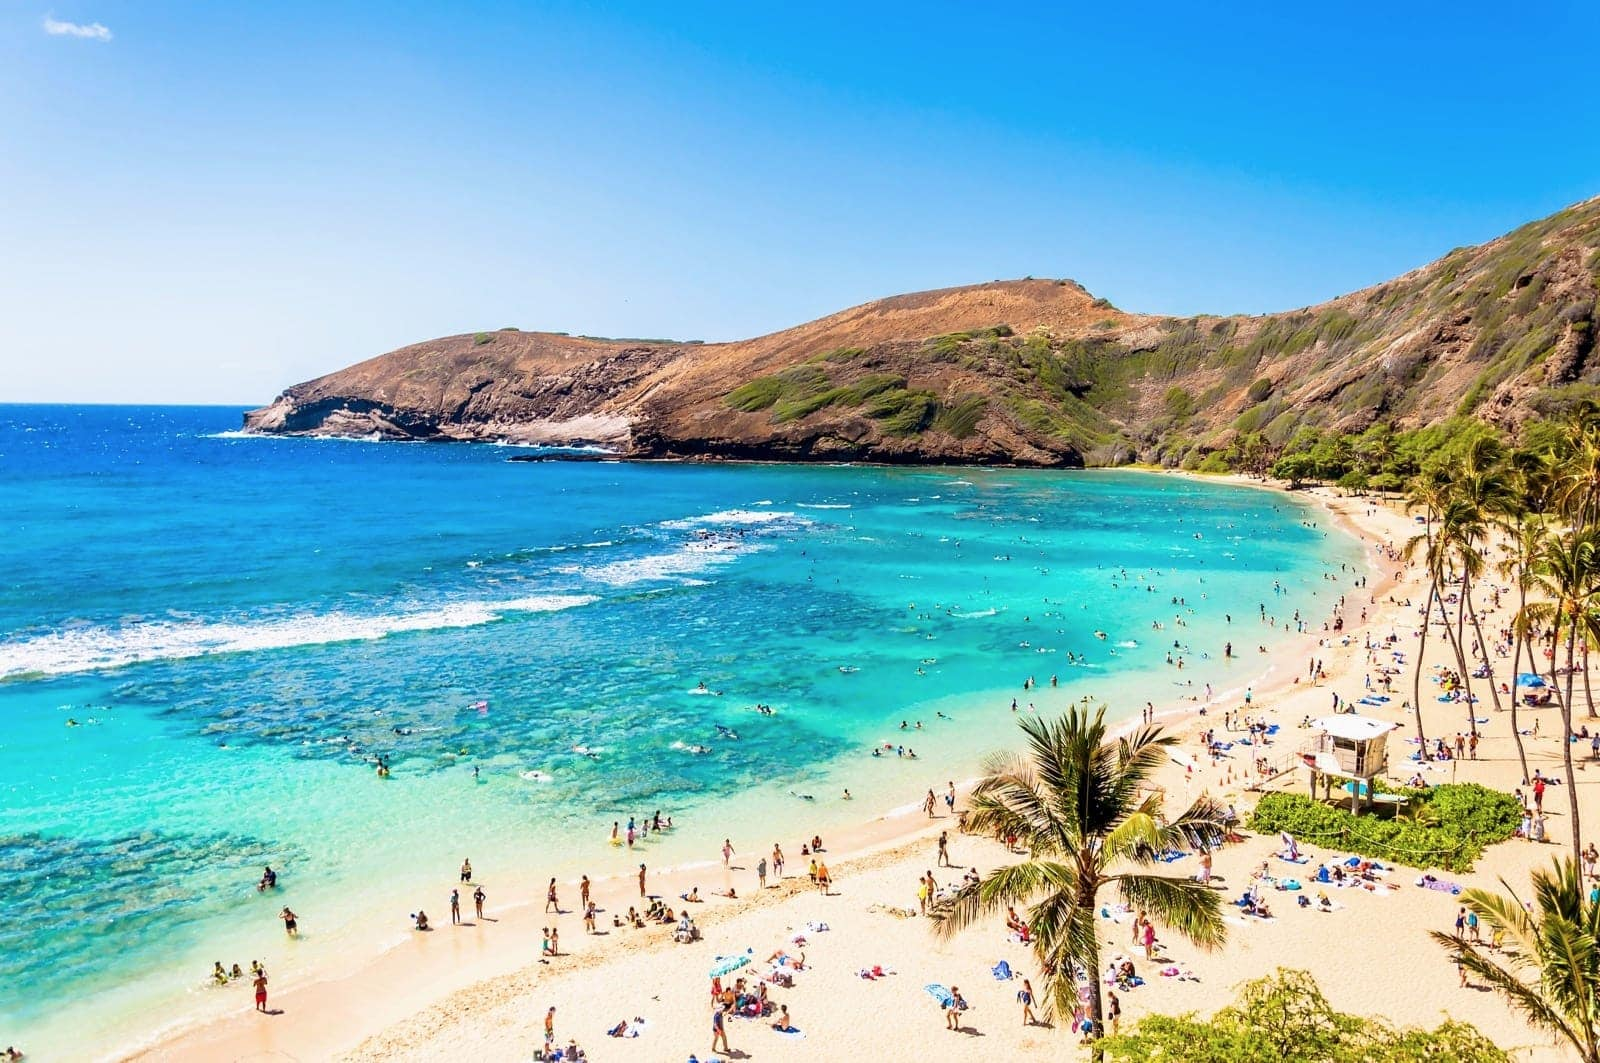 2019 Coronavirus / COVID-19 and your trip to Hawaii